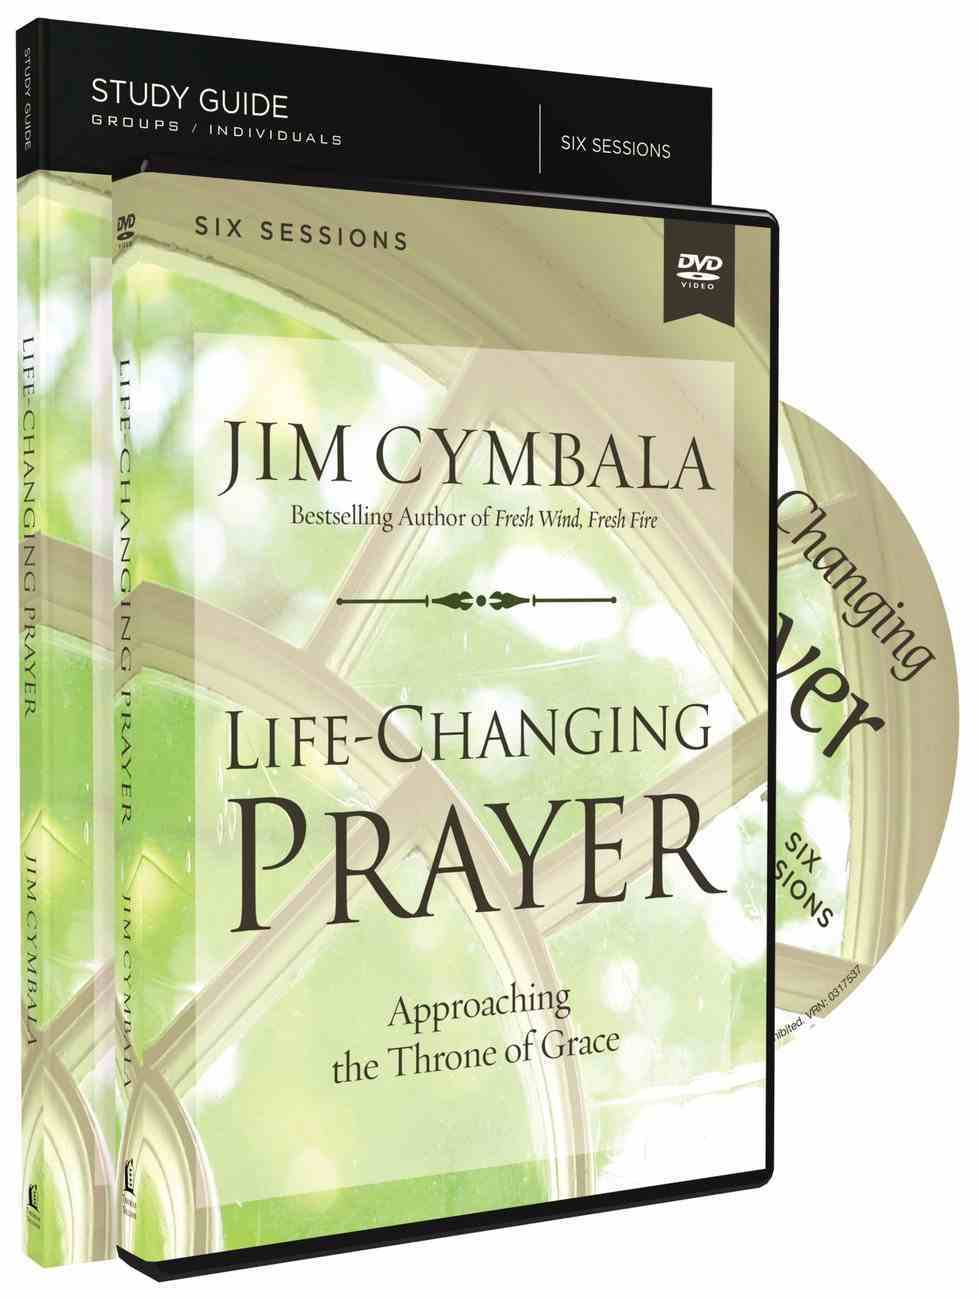 Life-Changing Prayer: Approaching the Throne of Grace (Study Guide With Dvd) Pack